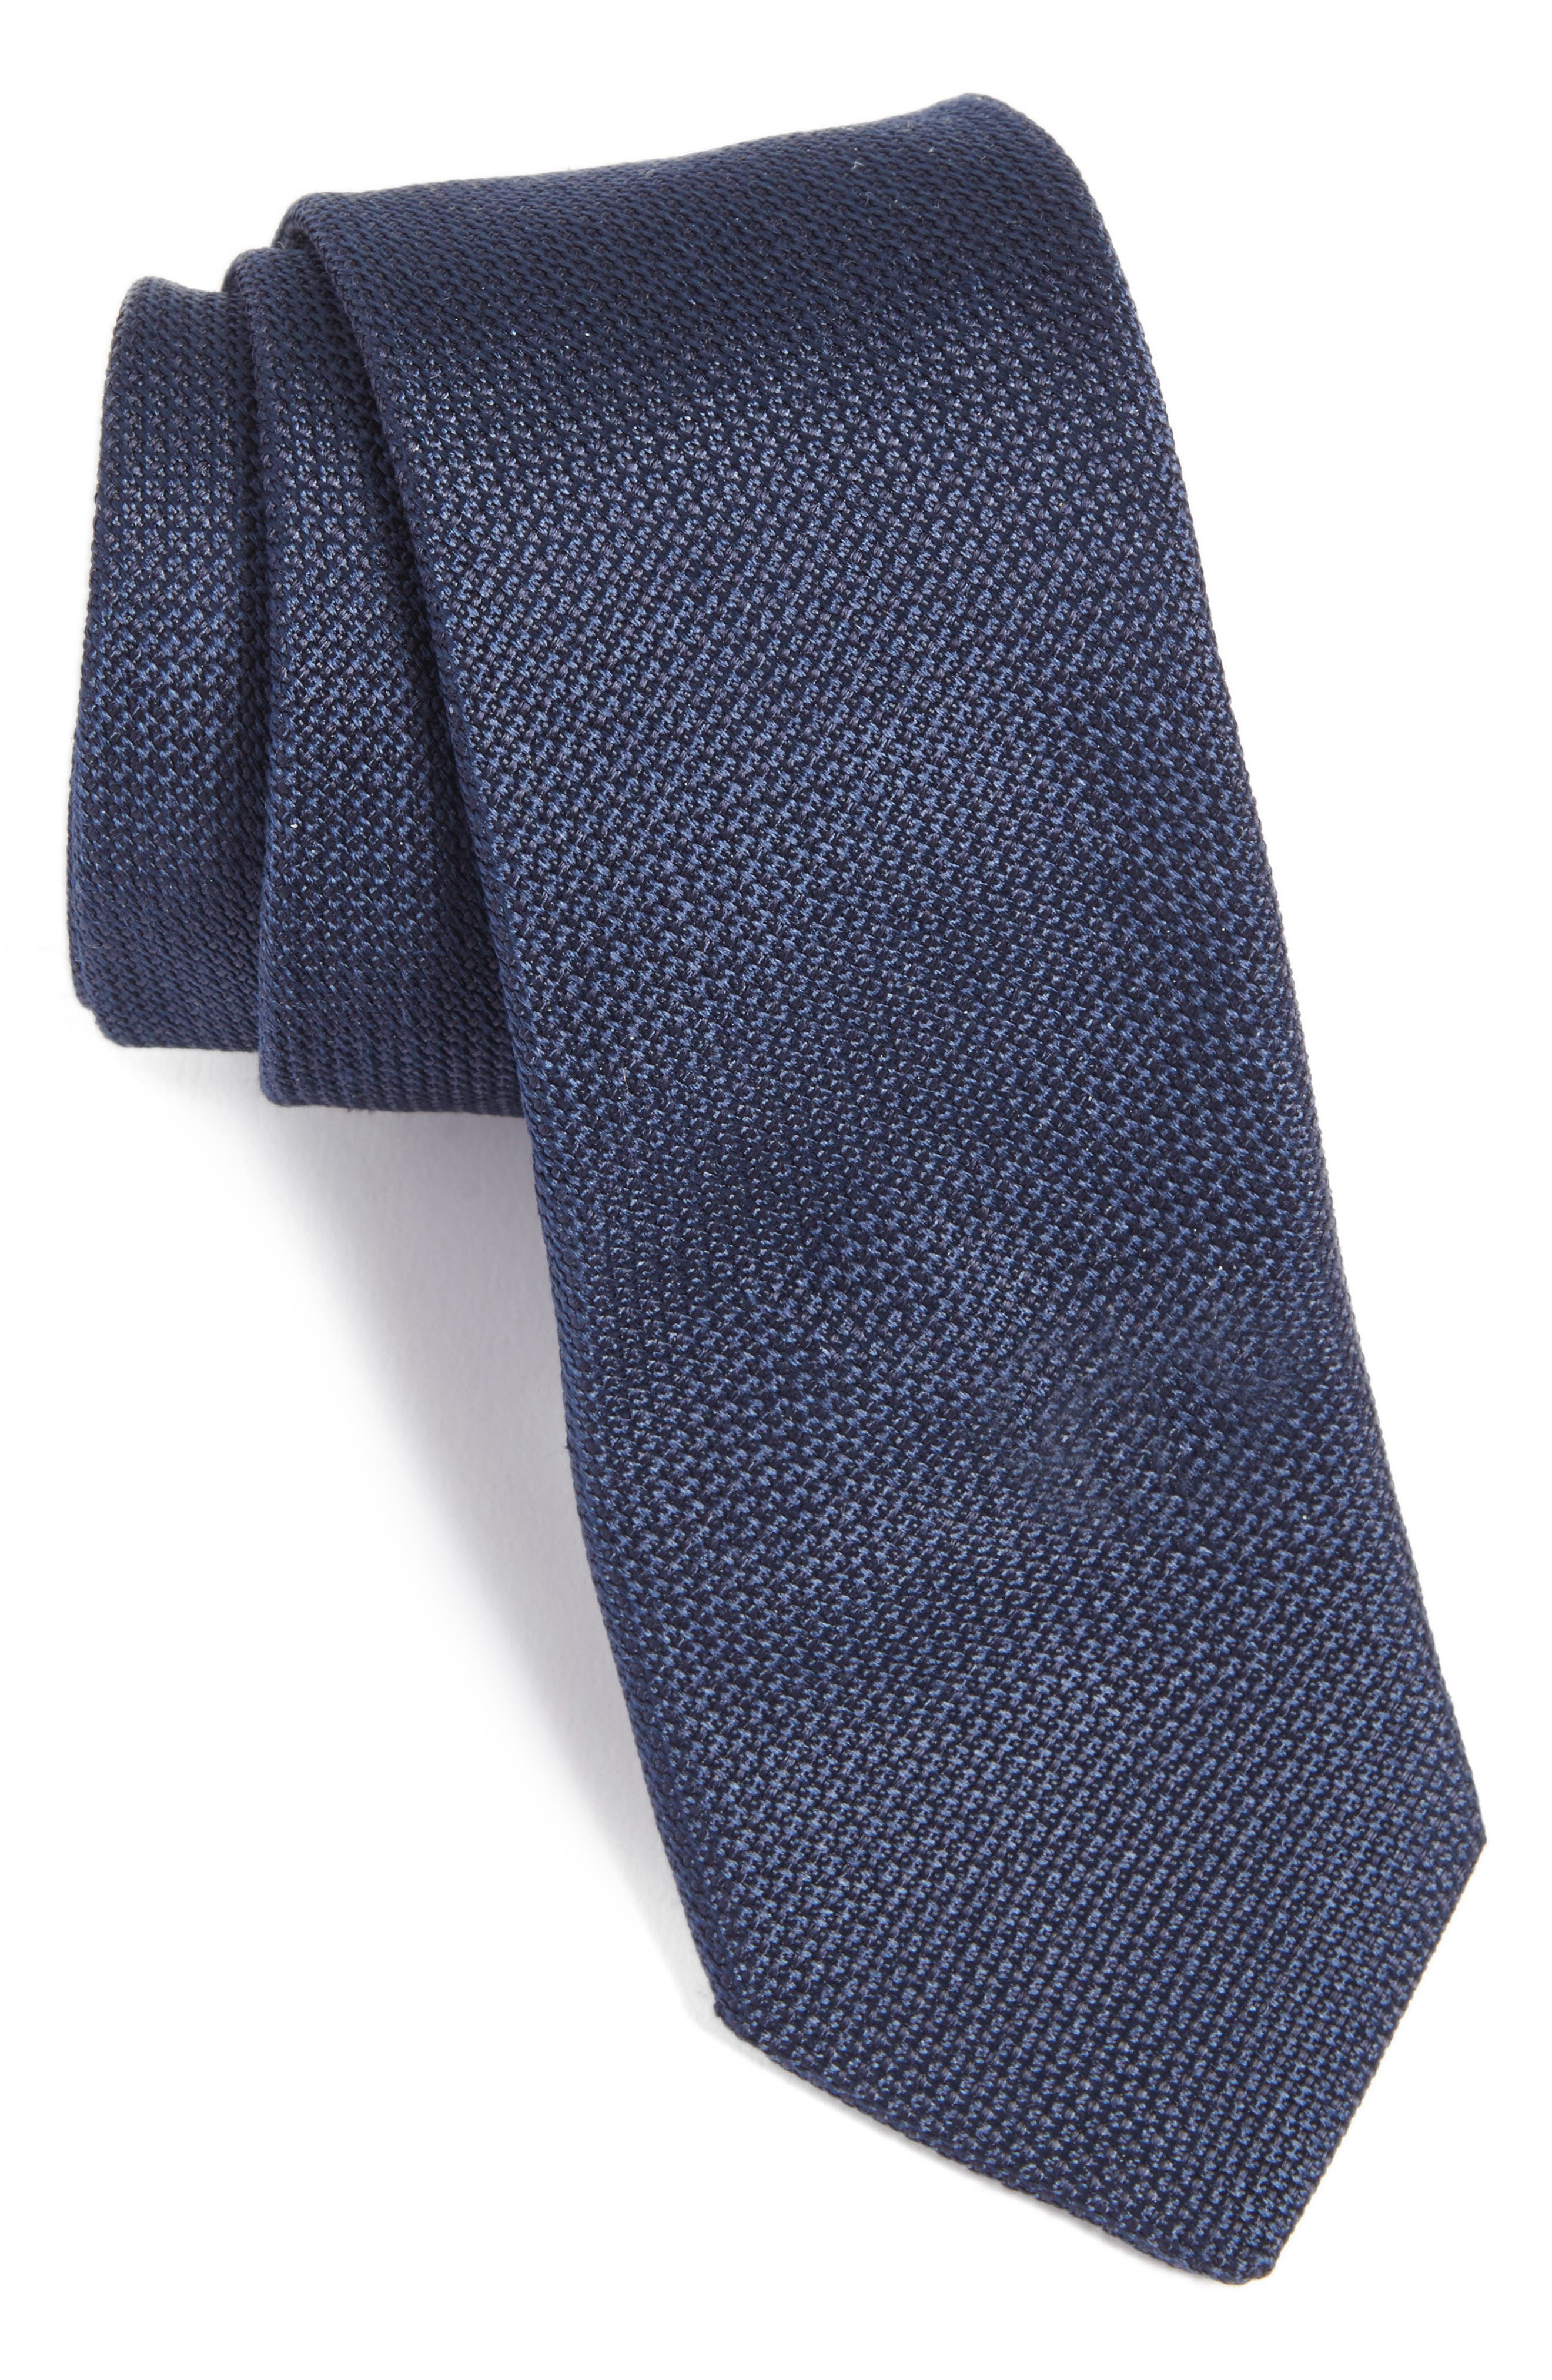 Solid Silk Tie,                             Main thumbnail 1, color,                             411